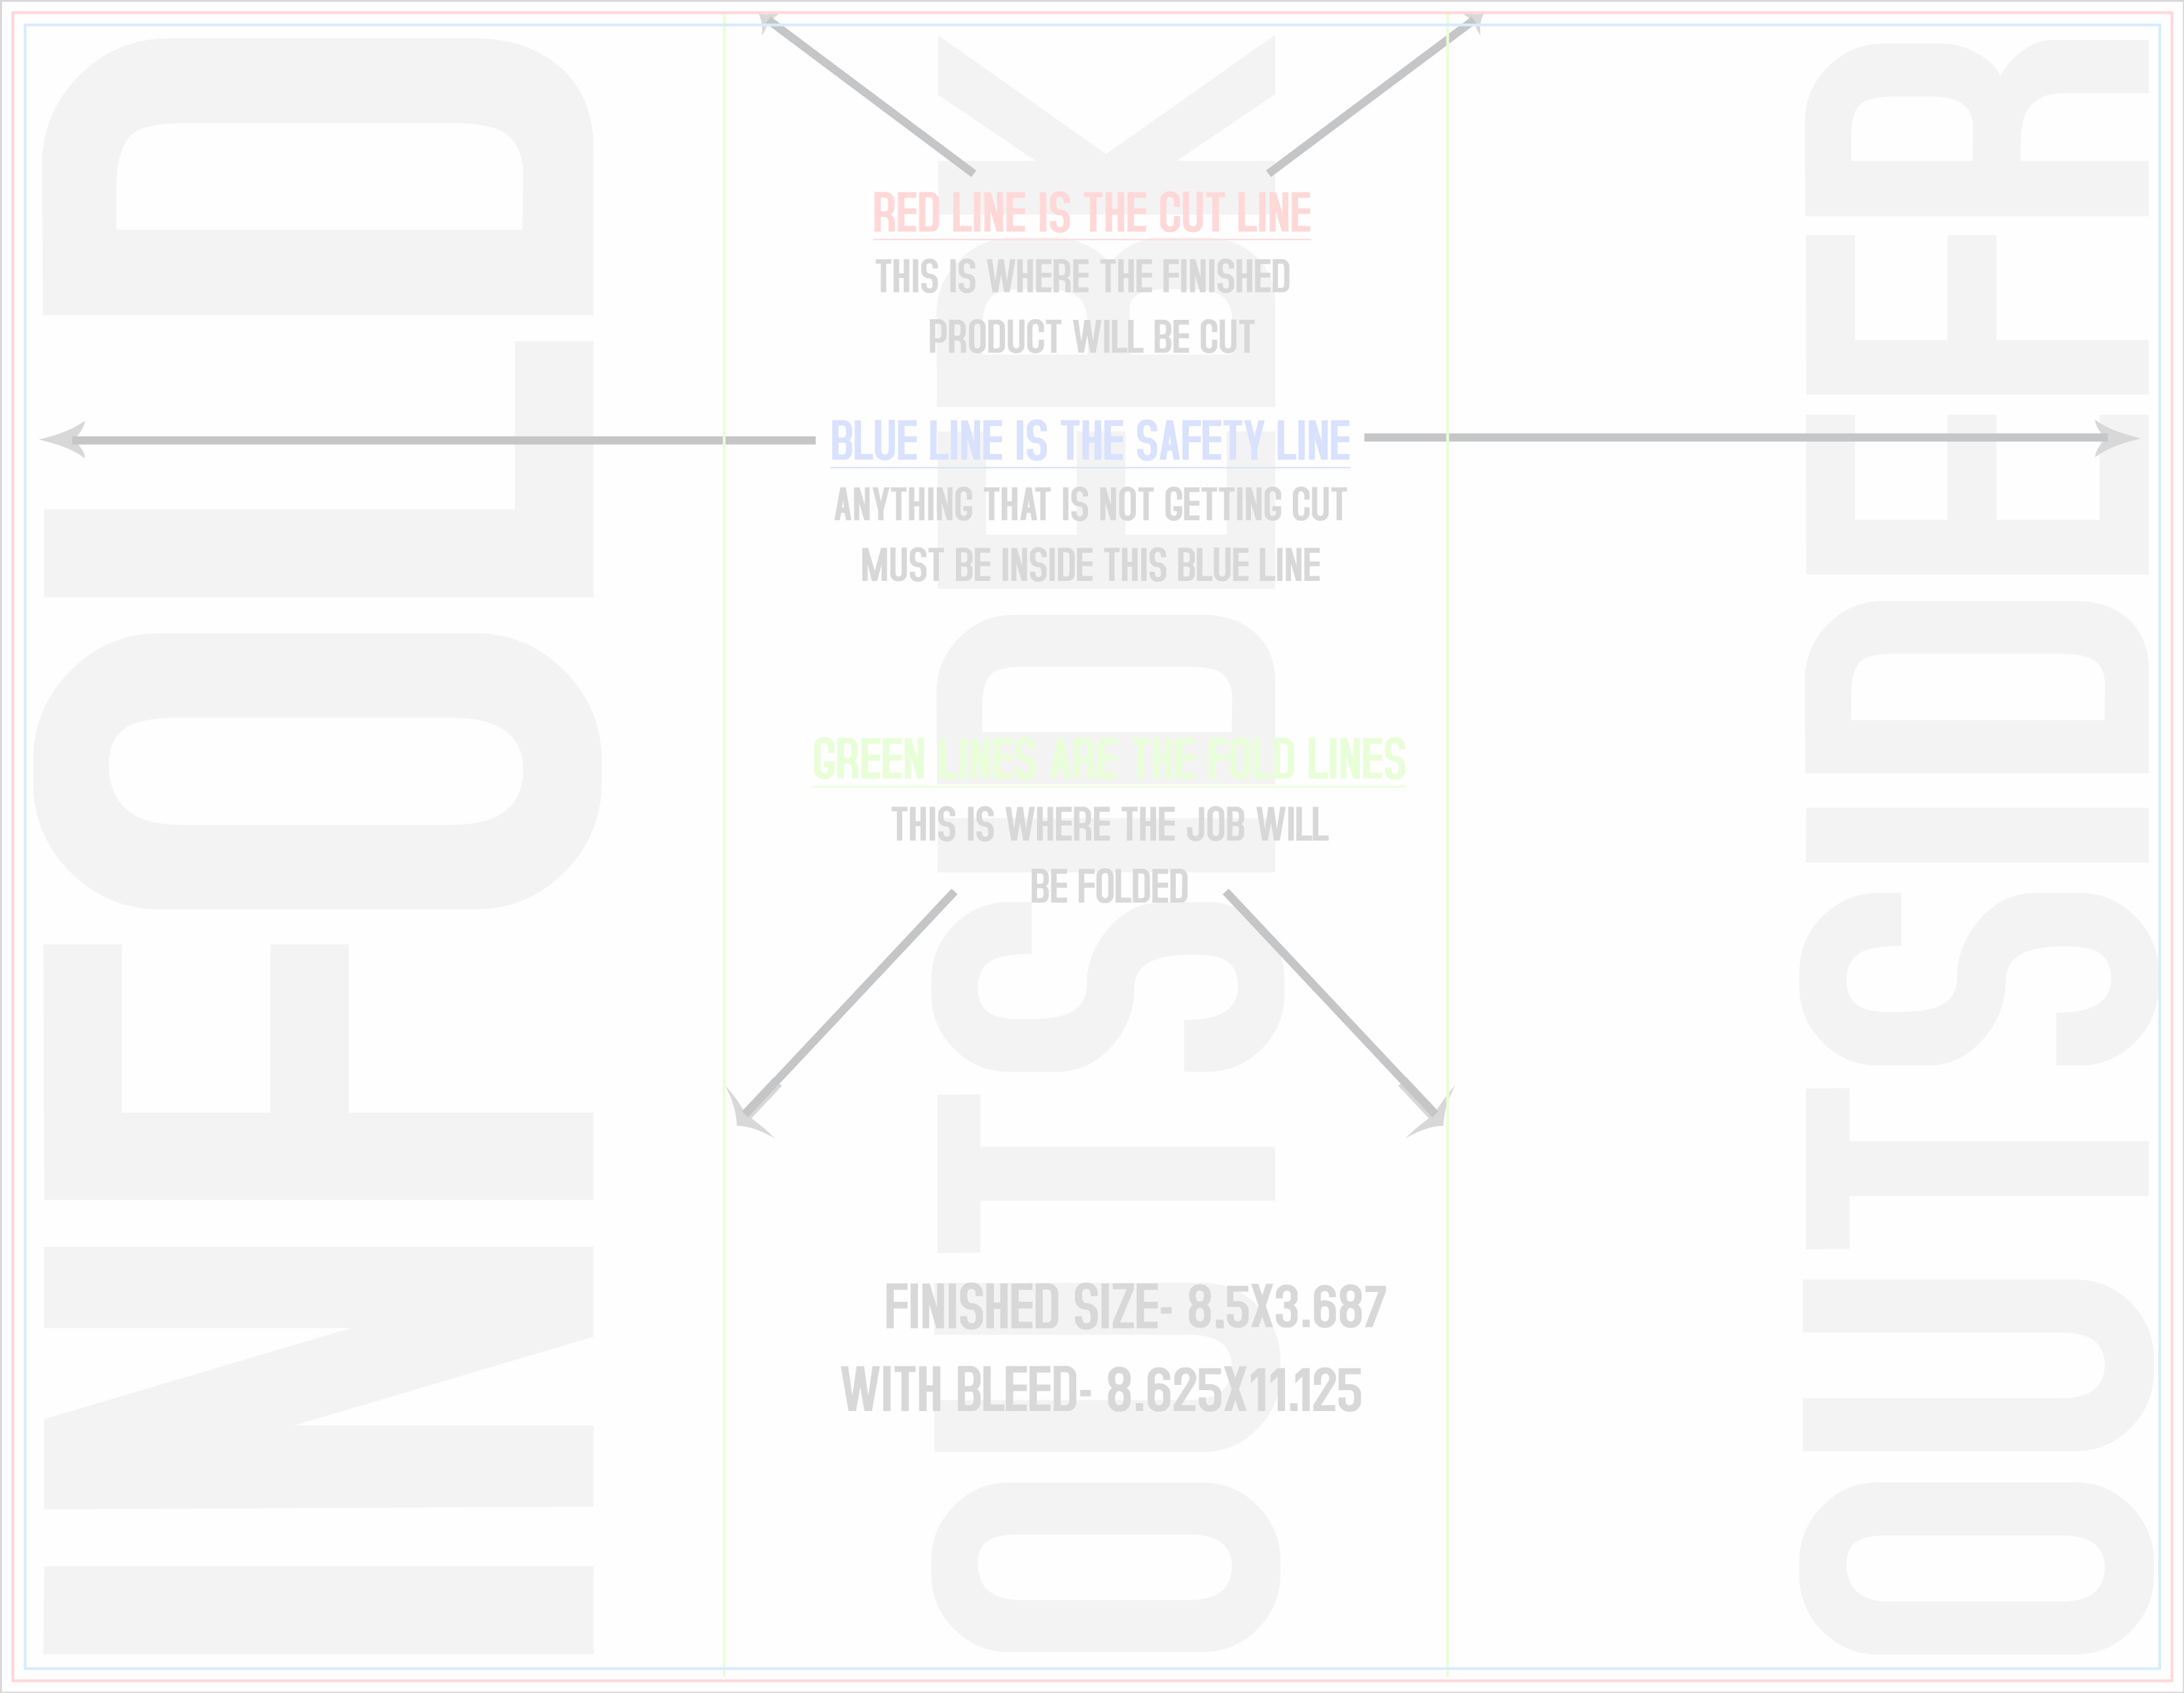 Free Printing Templates Psd Jpeg For Print Products